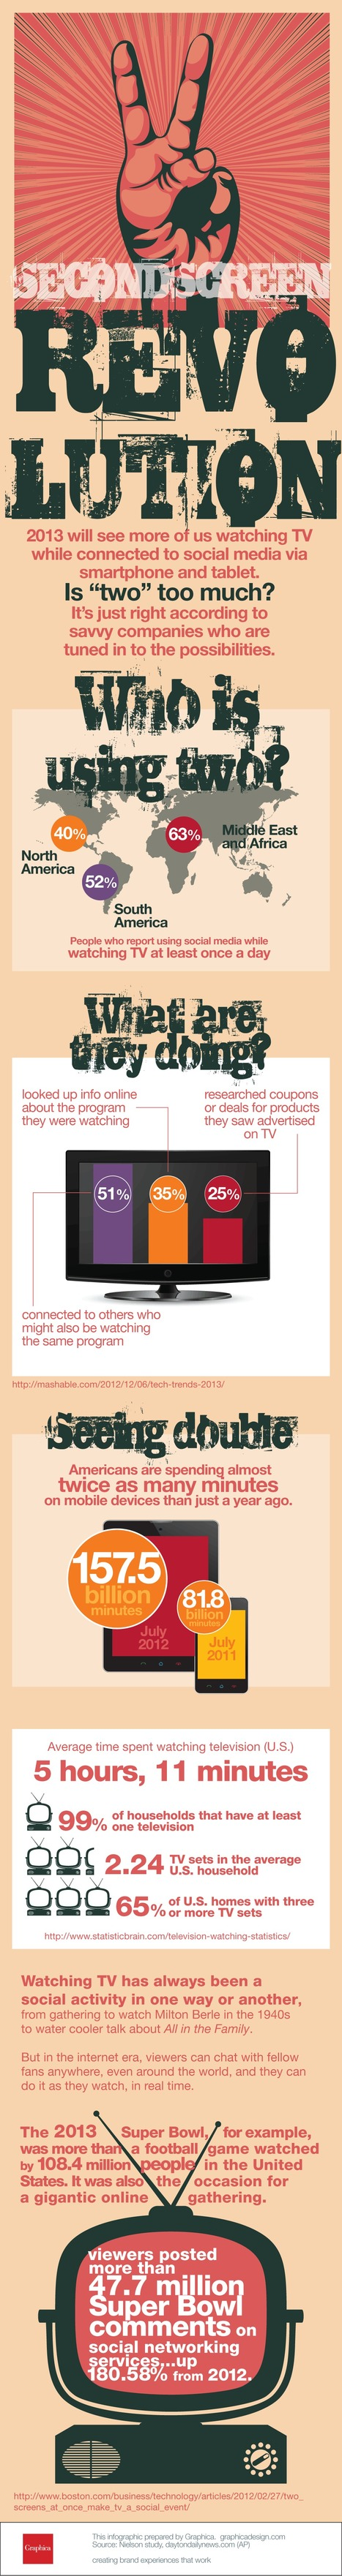 Second Screen Revolution (infographic) | Social TV is everywhere | Scoop.it